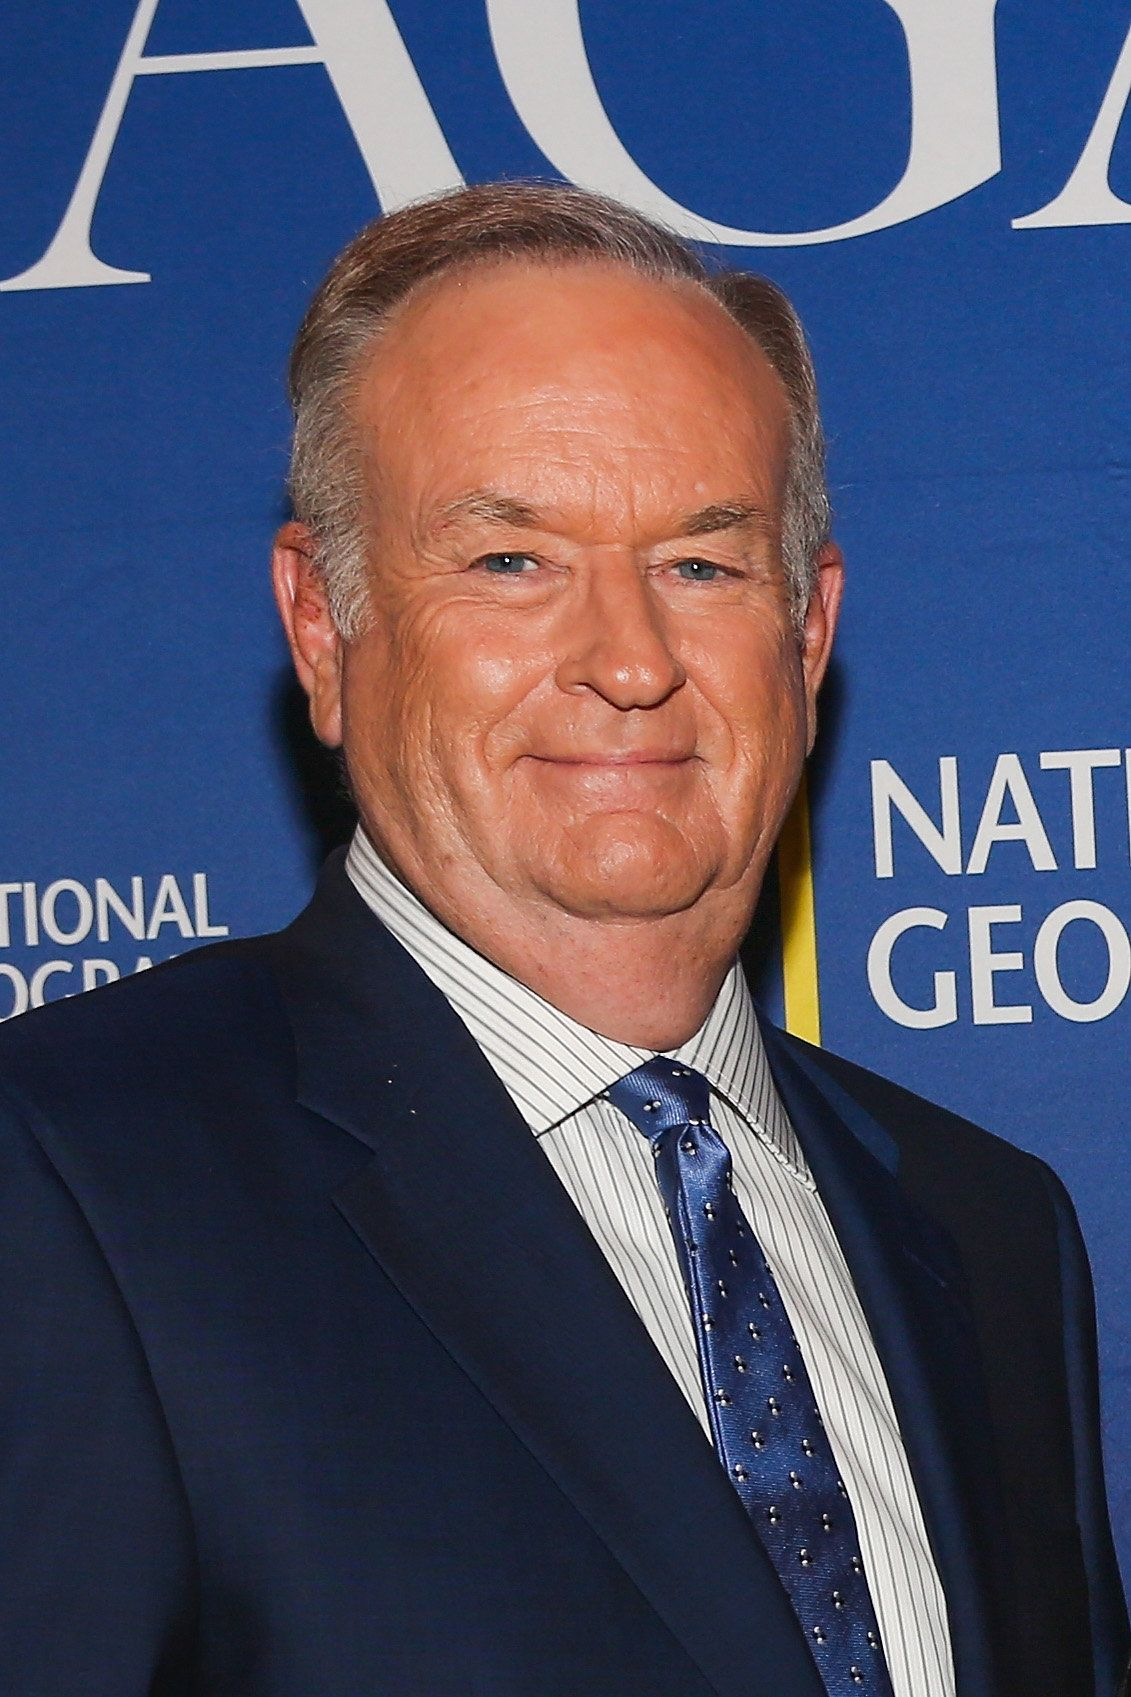 Bill O'Reilly Once Wrote A Murderous Revenge Plot About A Fired News